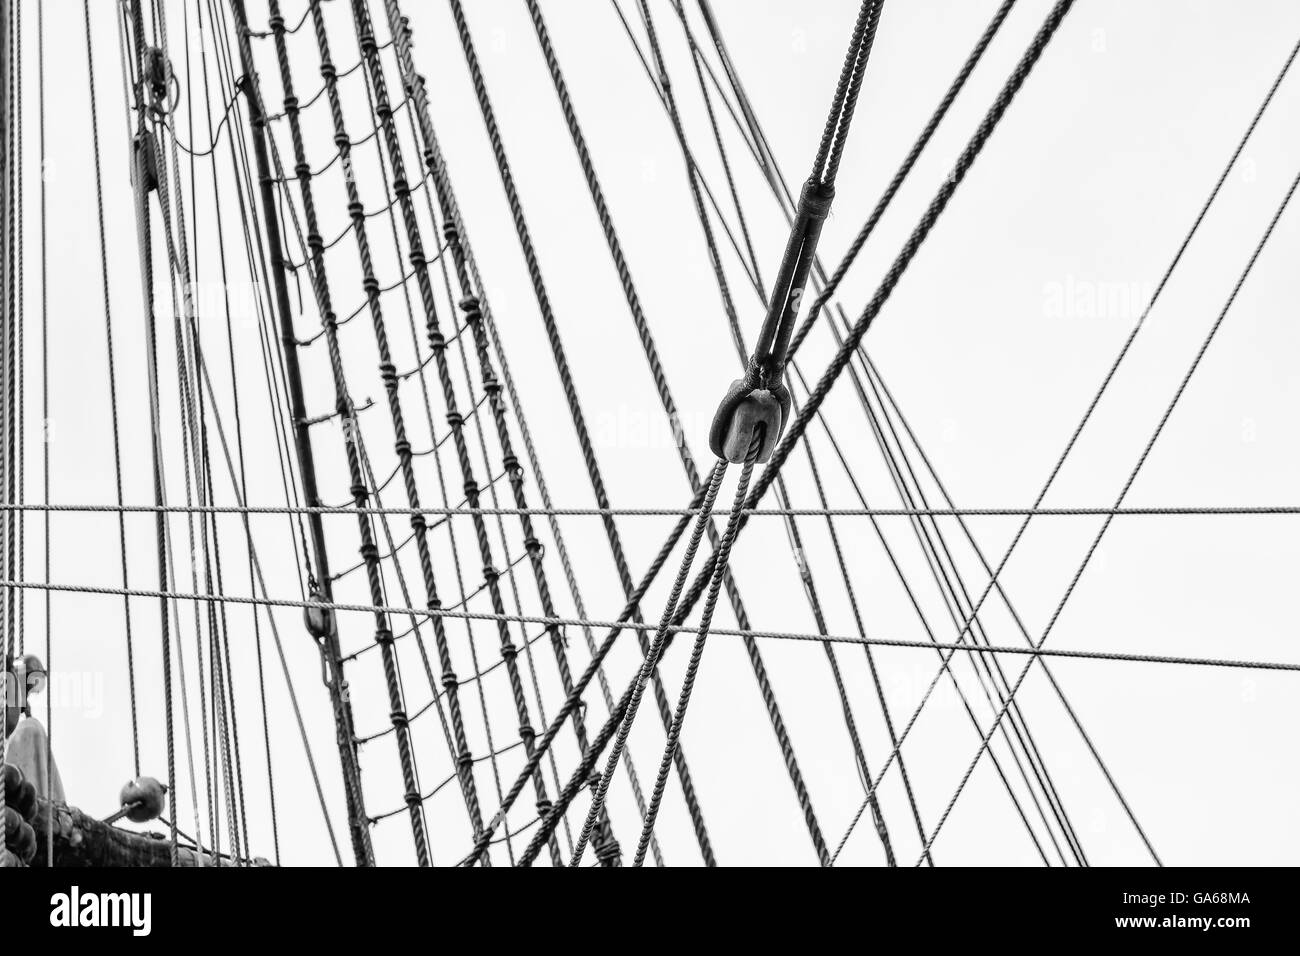 The mast with rigging of a sailing ship - Stock Image